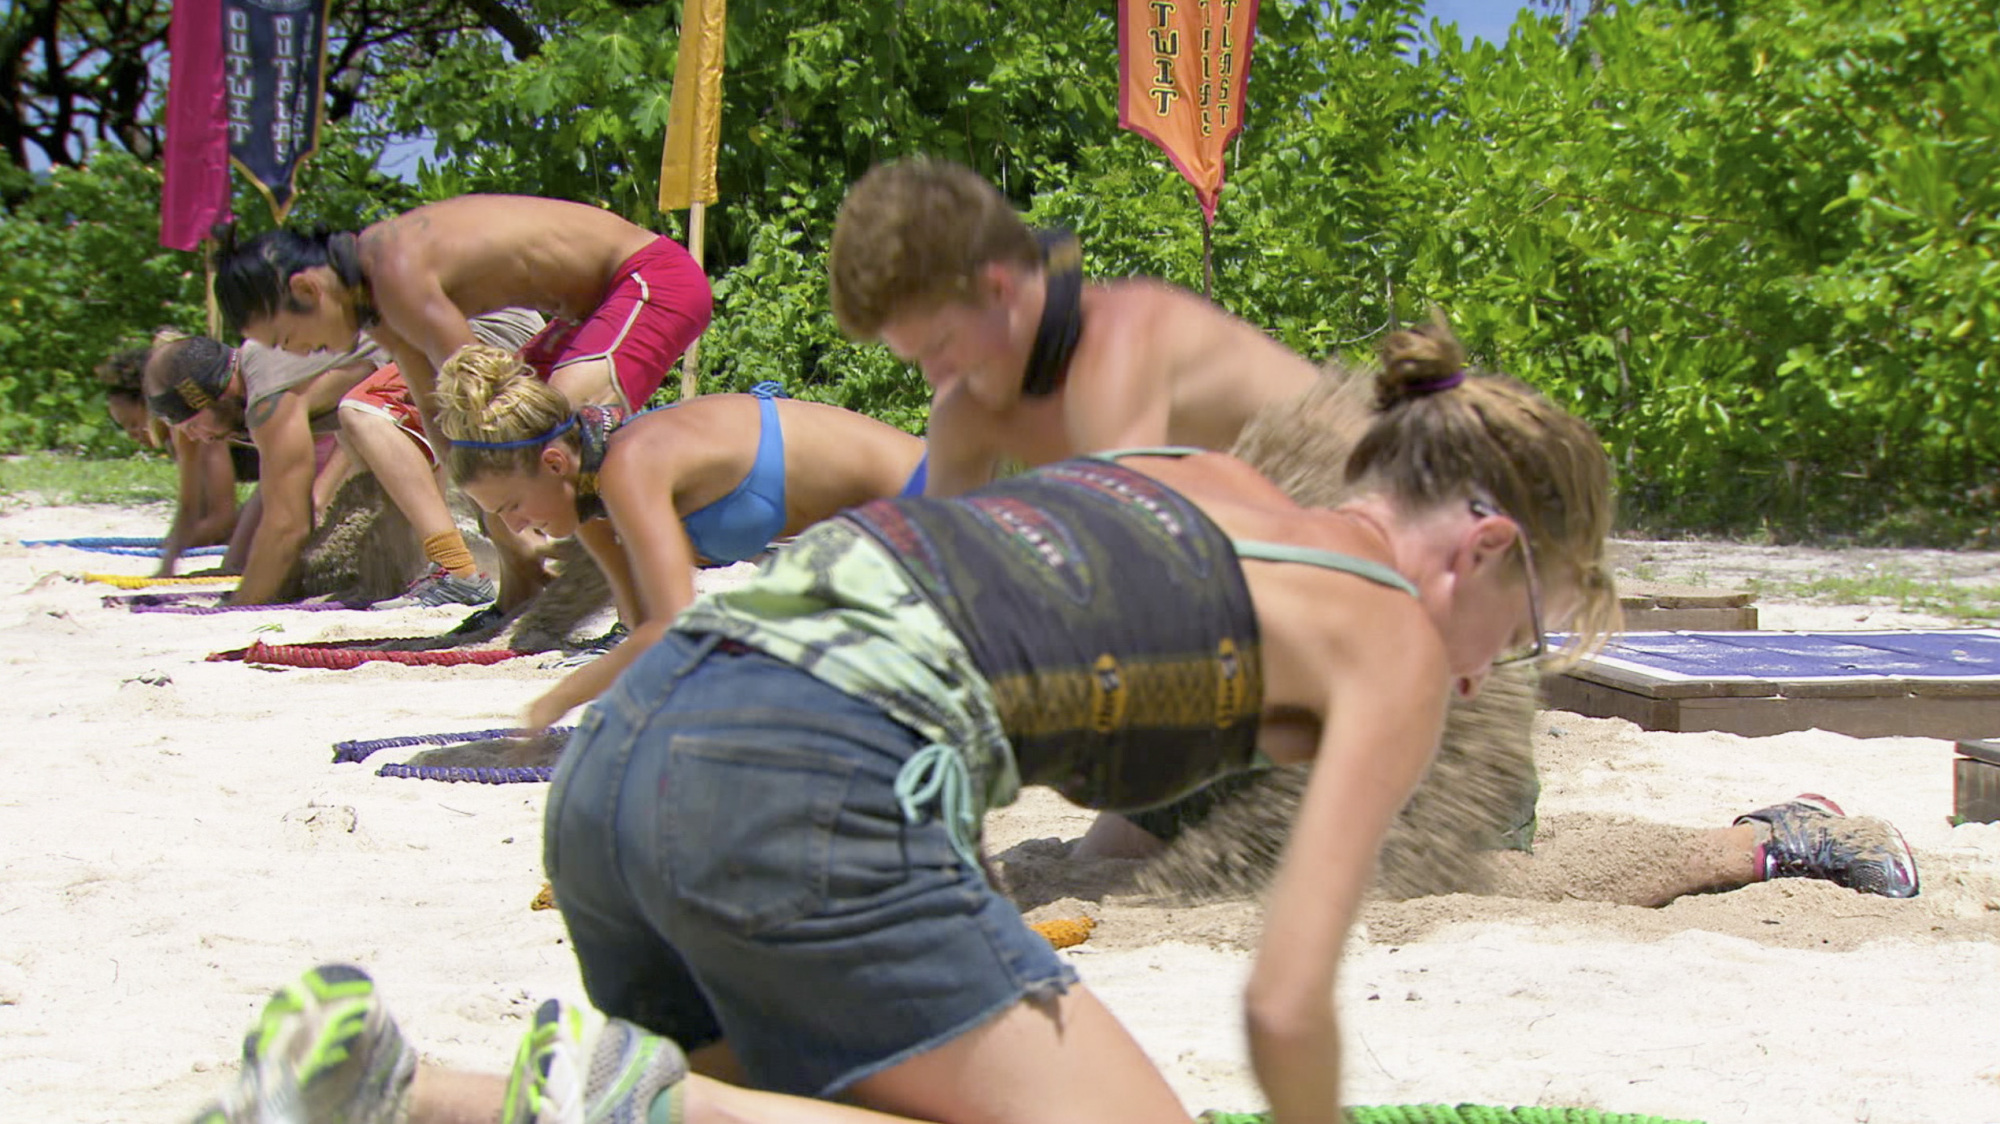 Competing hard in Season 28 Episode 10